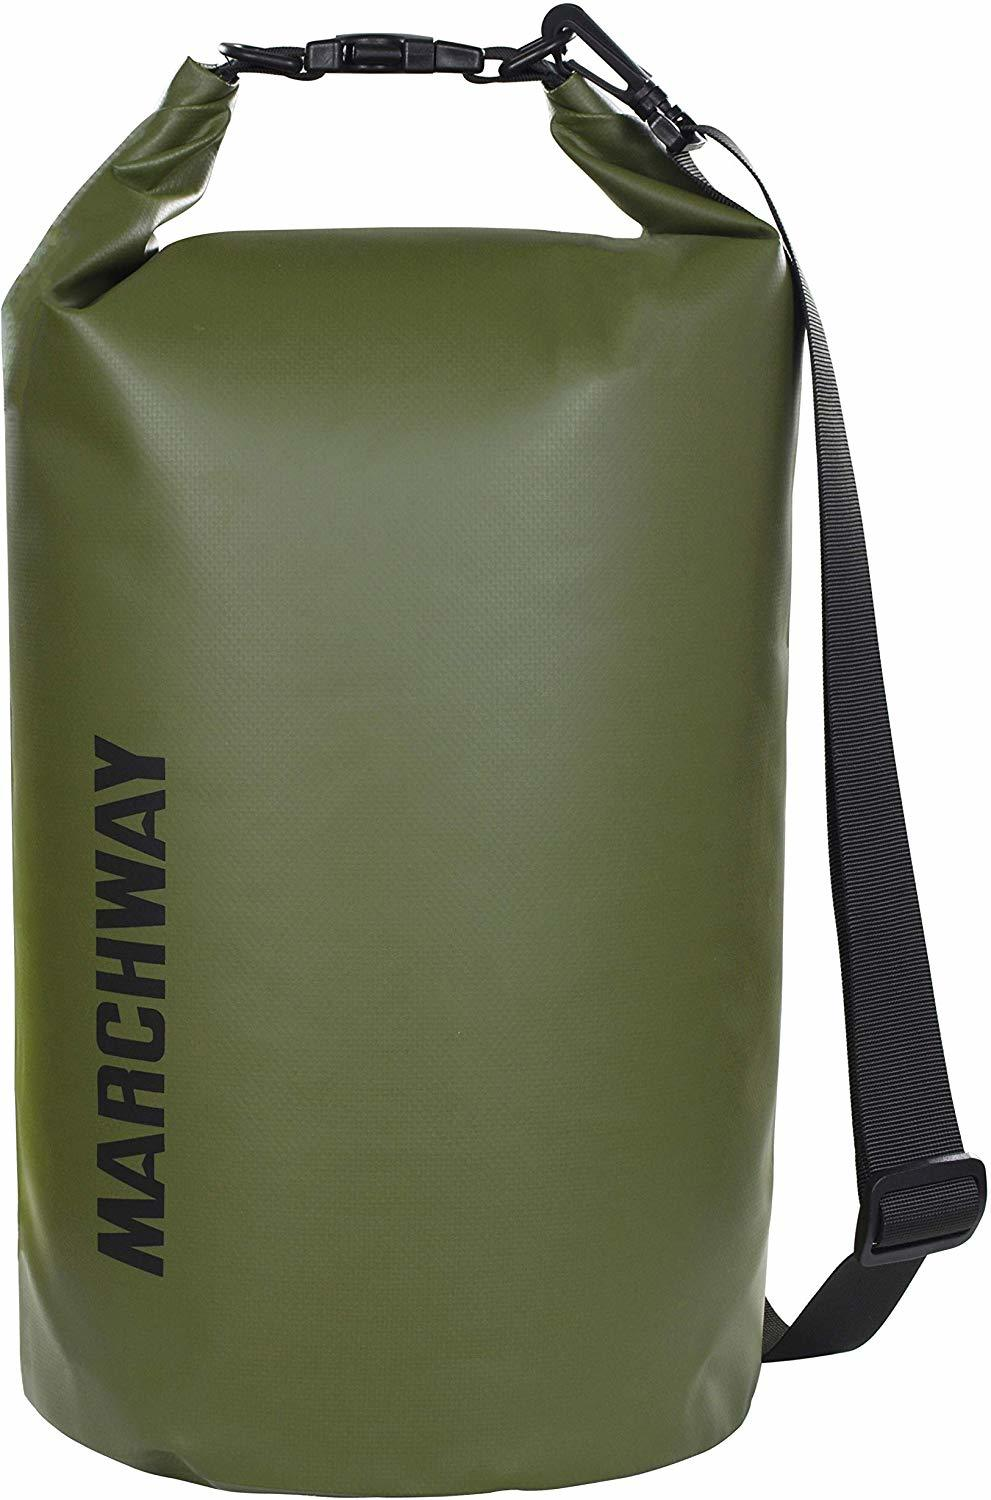 The Top 10 Dry Bag to Use to Keep Your Wet Clothes while Traveling 3